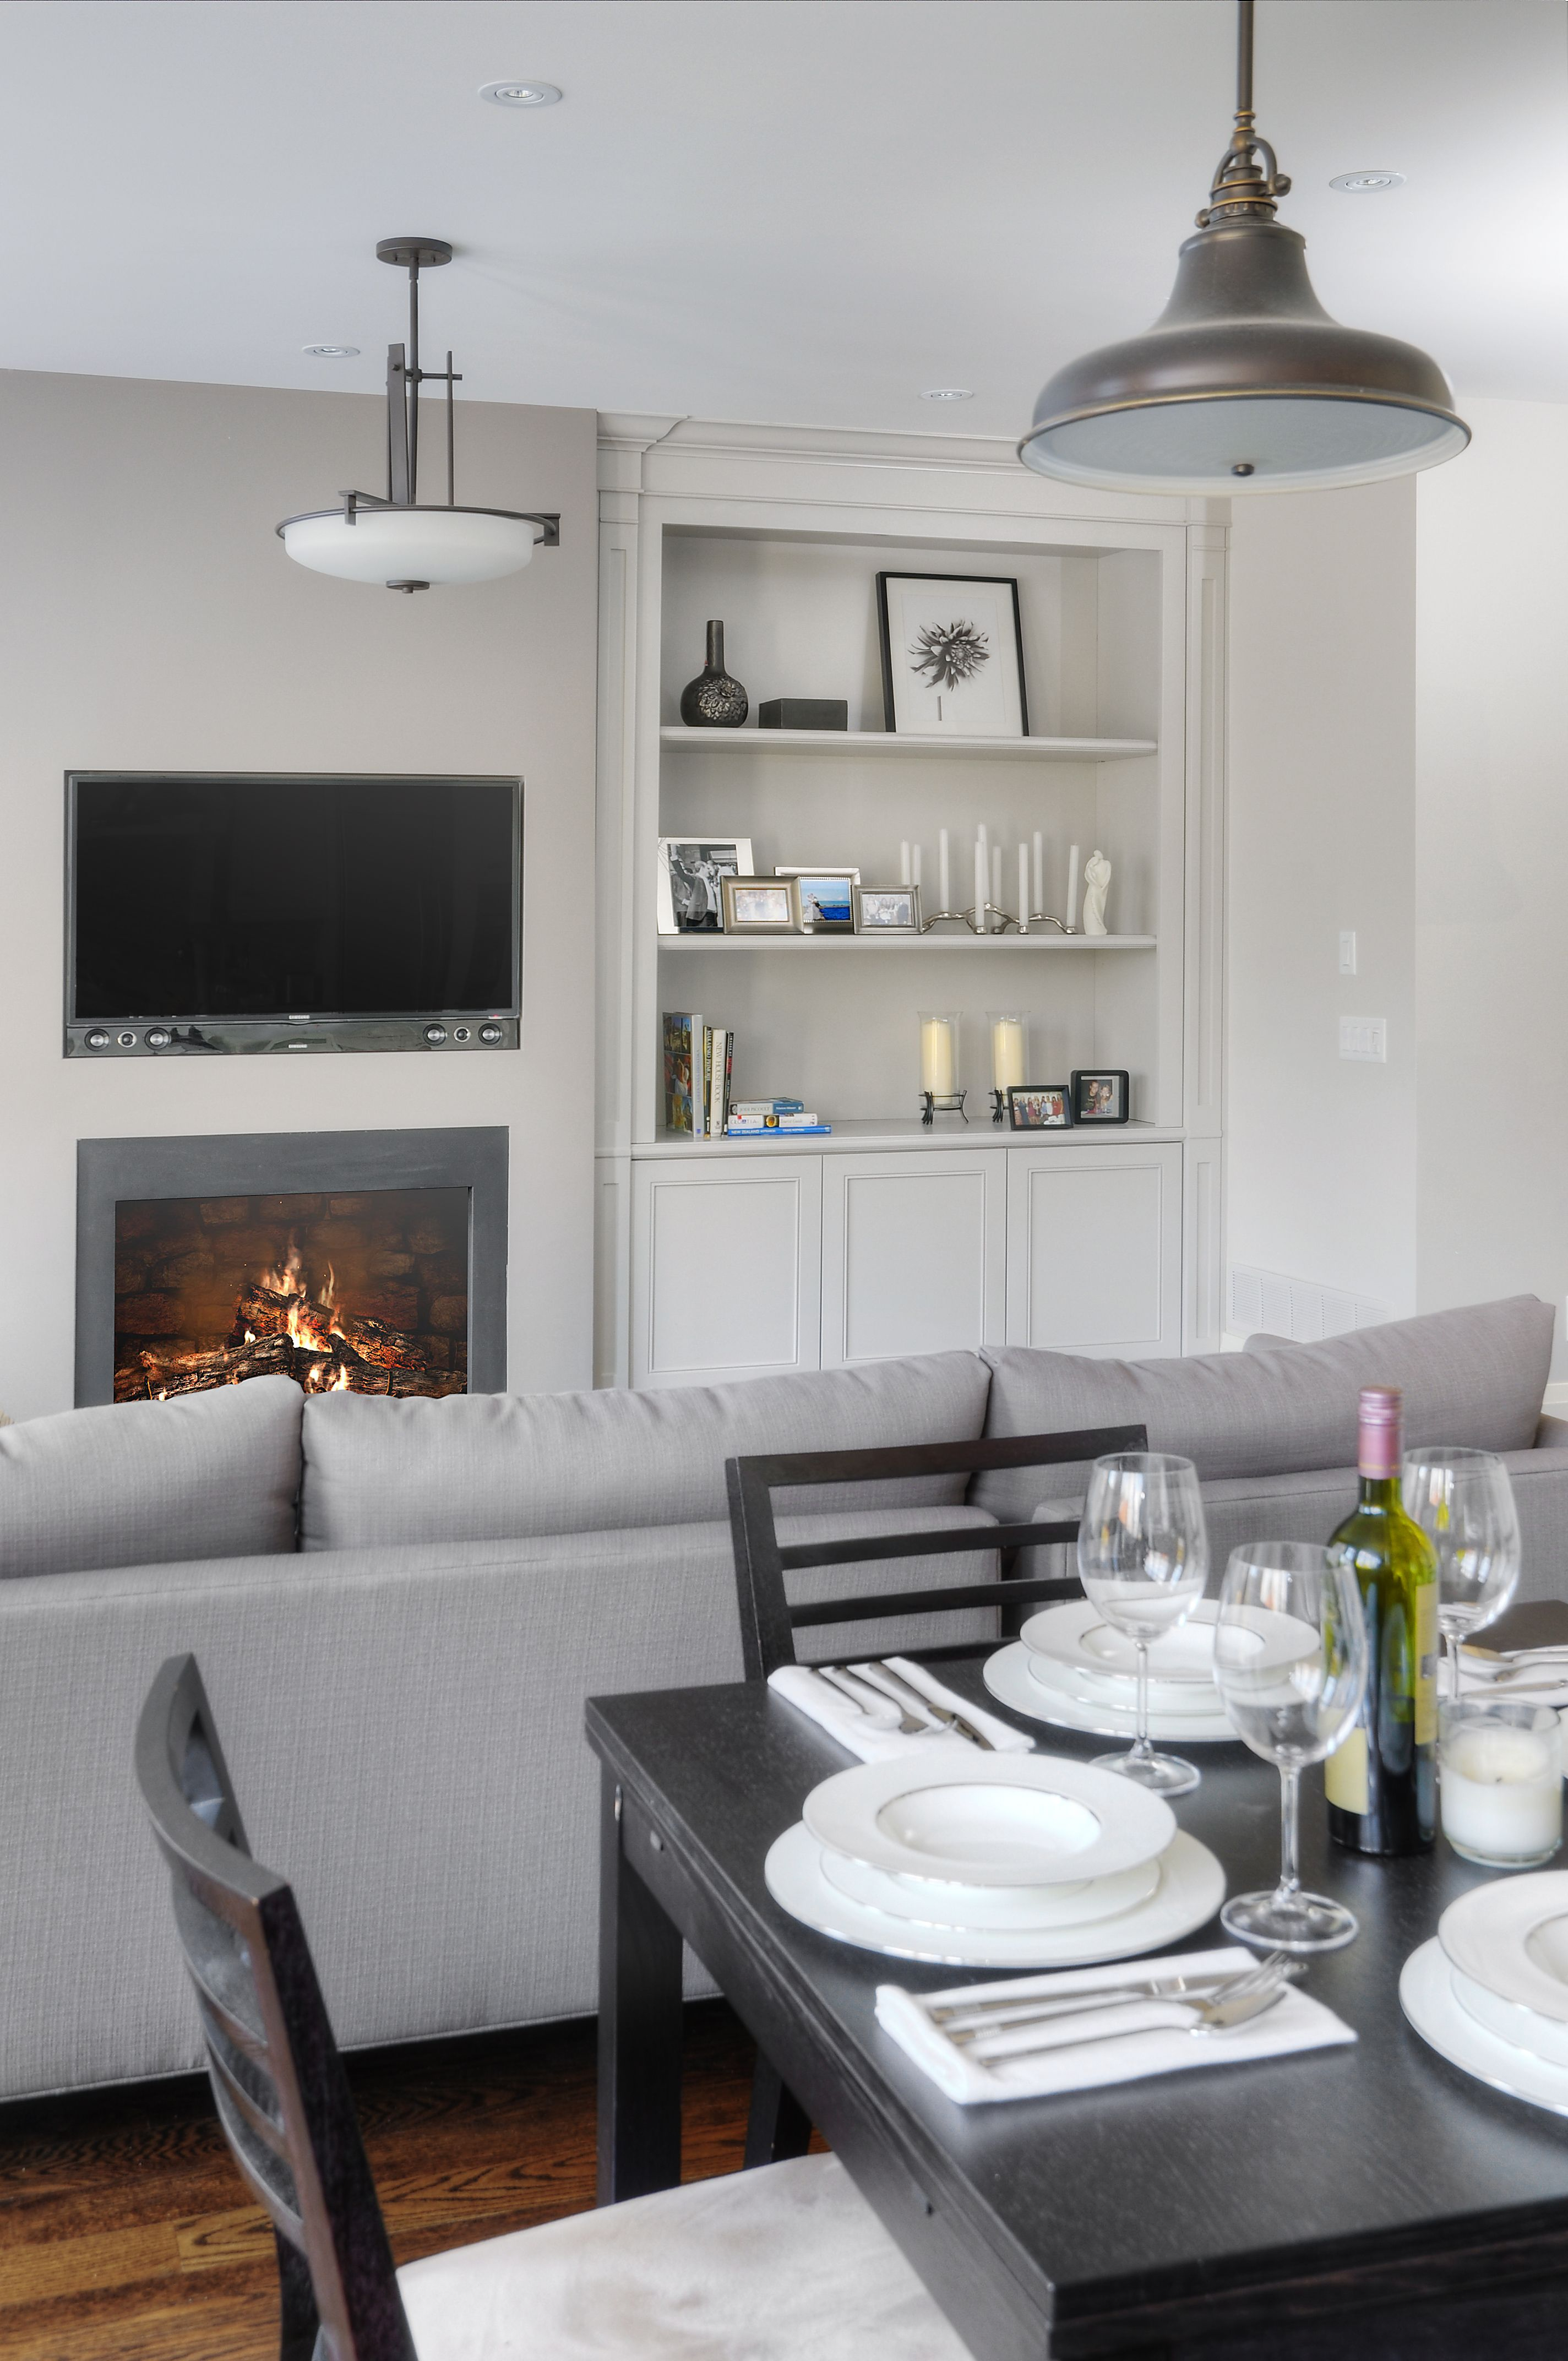 Best Painted Milan Style Custom Cabinetry With Open Shelving 640 x 480